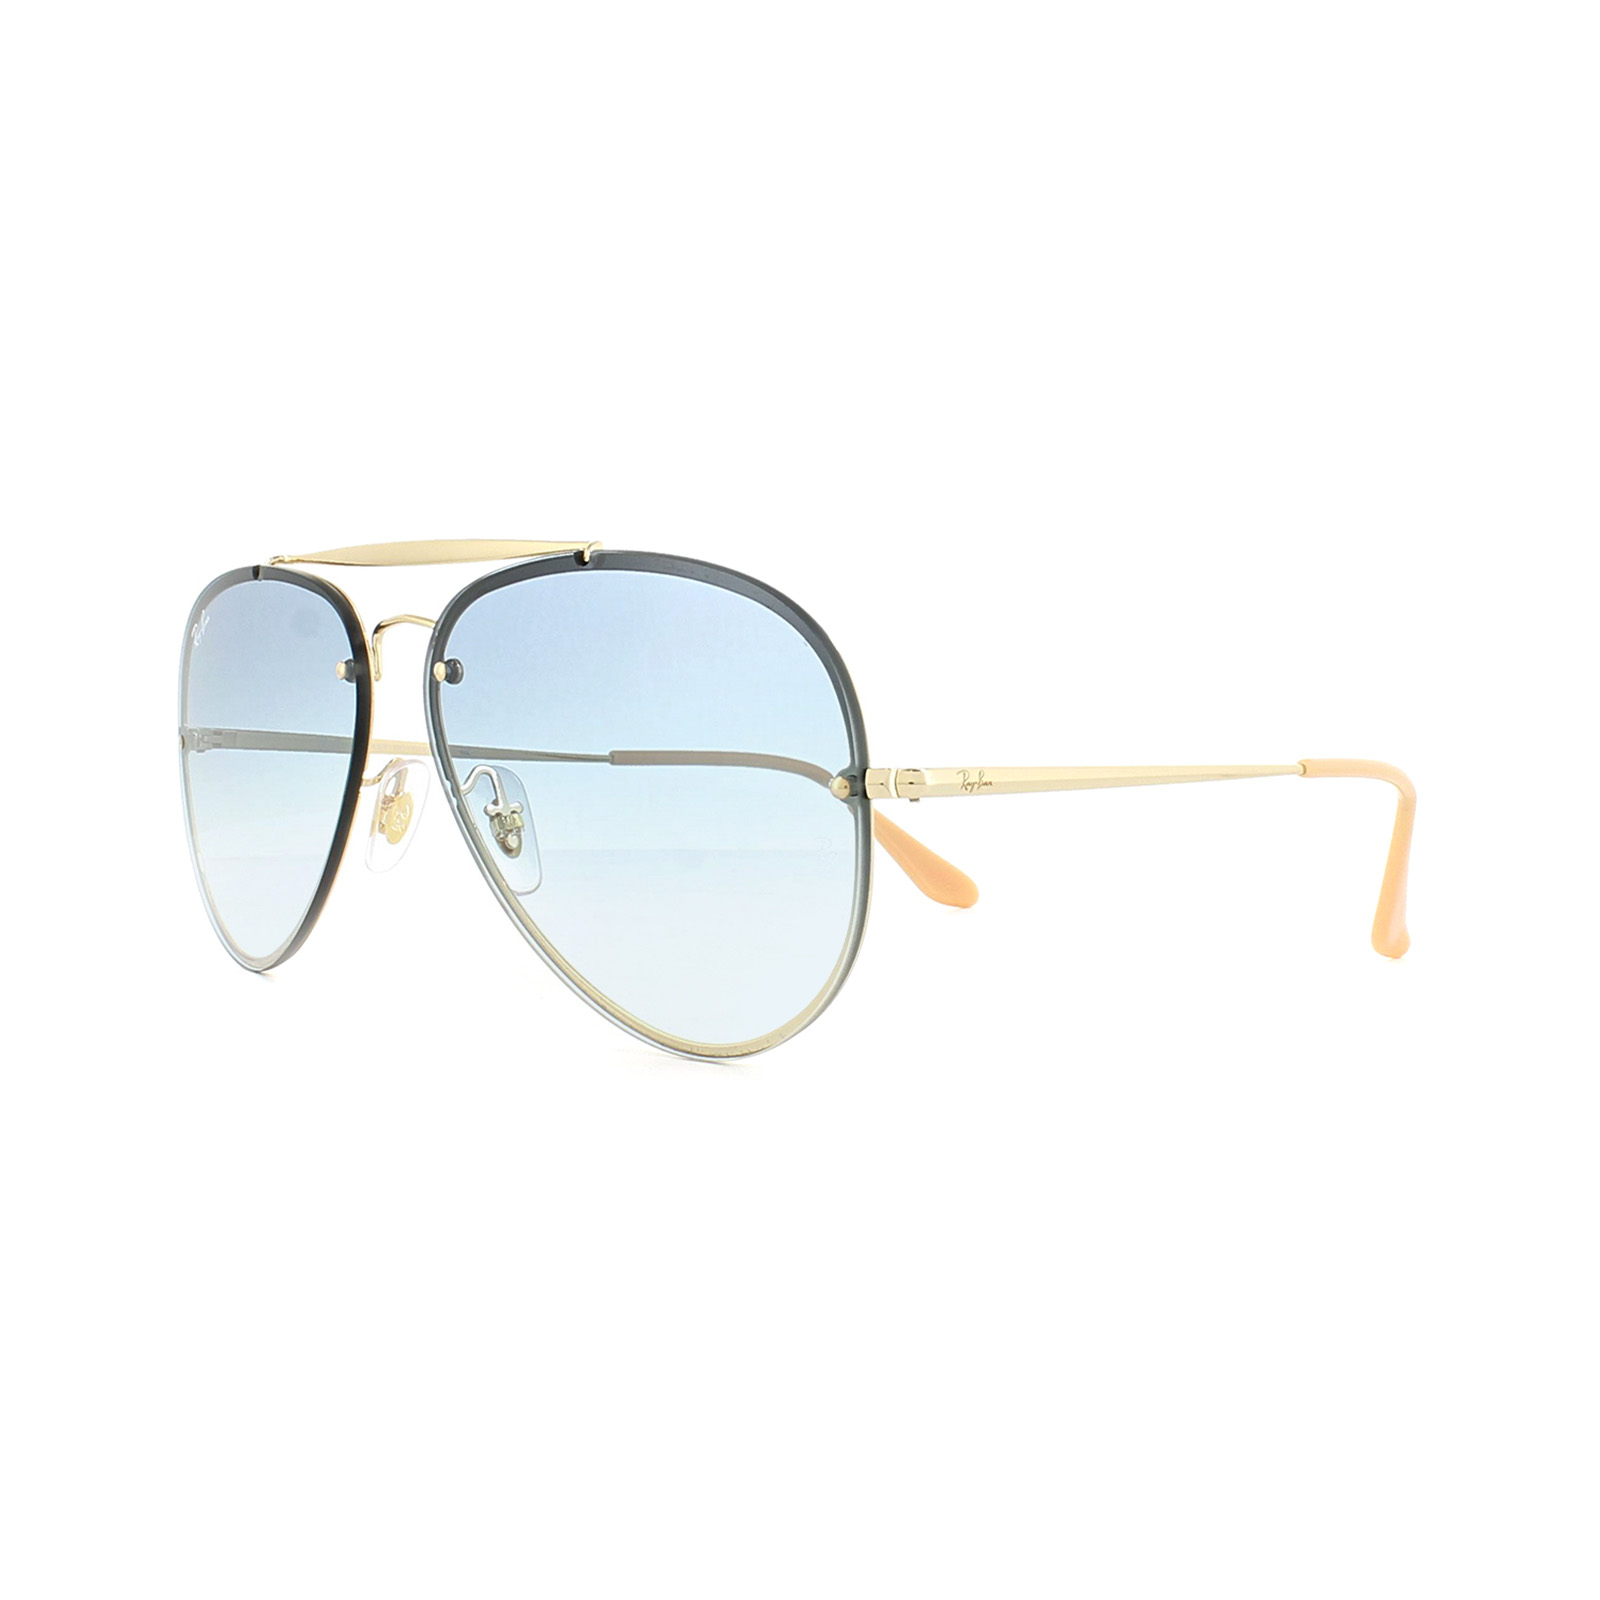 e2d6565c26af0 Sentinel Ray-Ban Sunglasses Blaze Aviator 3584N 001 19 Gold Light Blue  Gradient